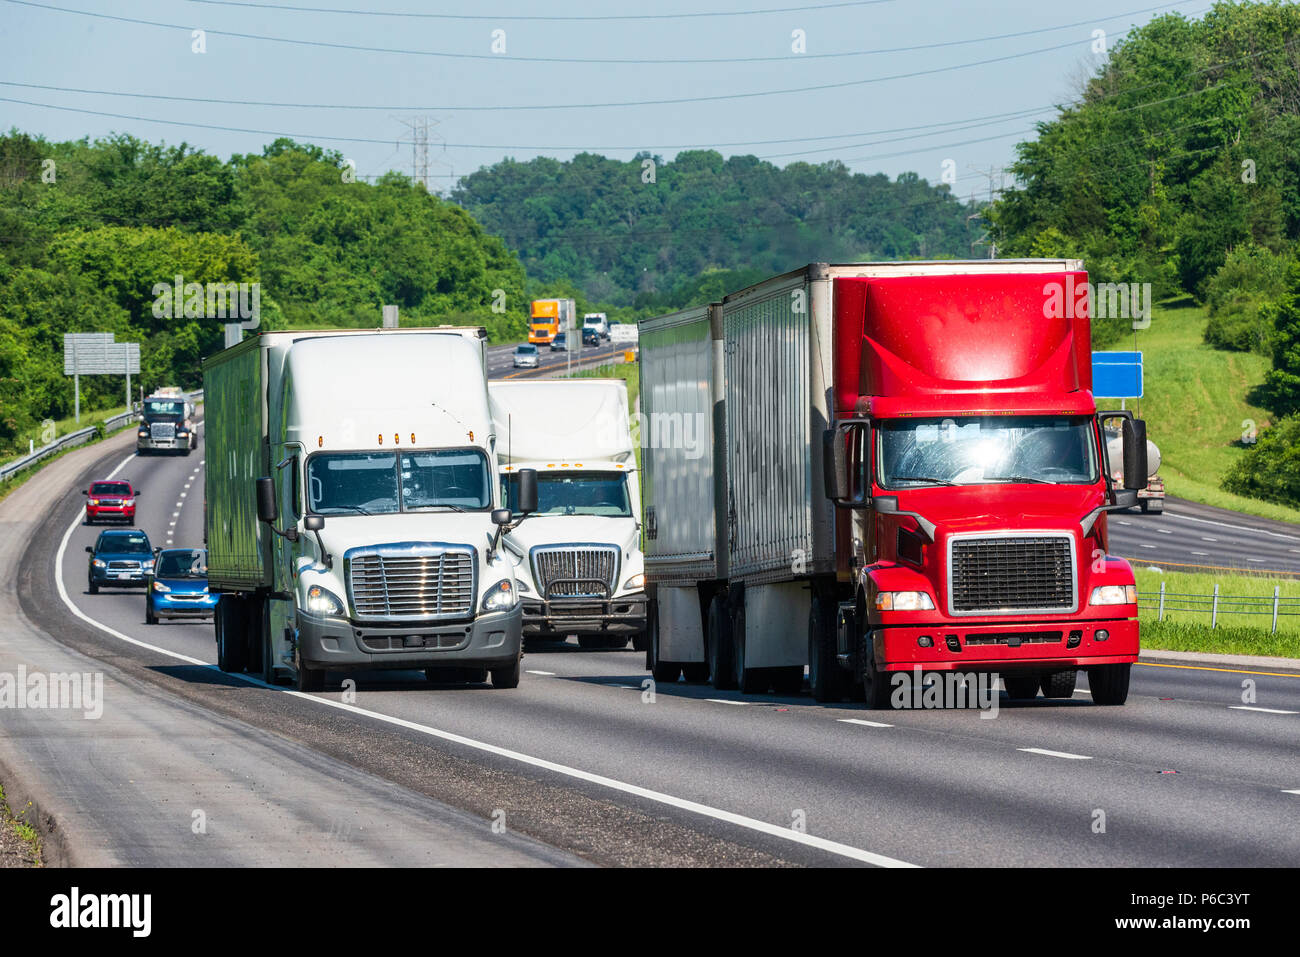 Tractor-trailer trucks lead traffic down the highway. Note: All logos and identifying marks have been removed from all vehicles.  Image was created on - Stock Image